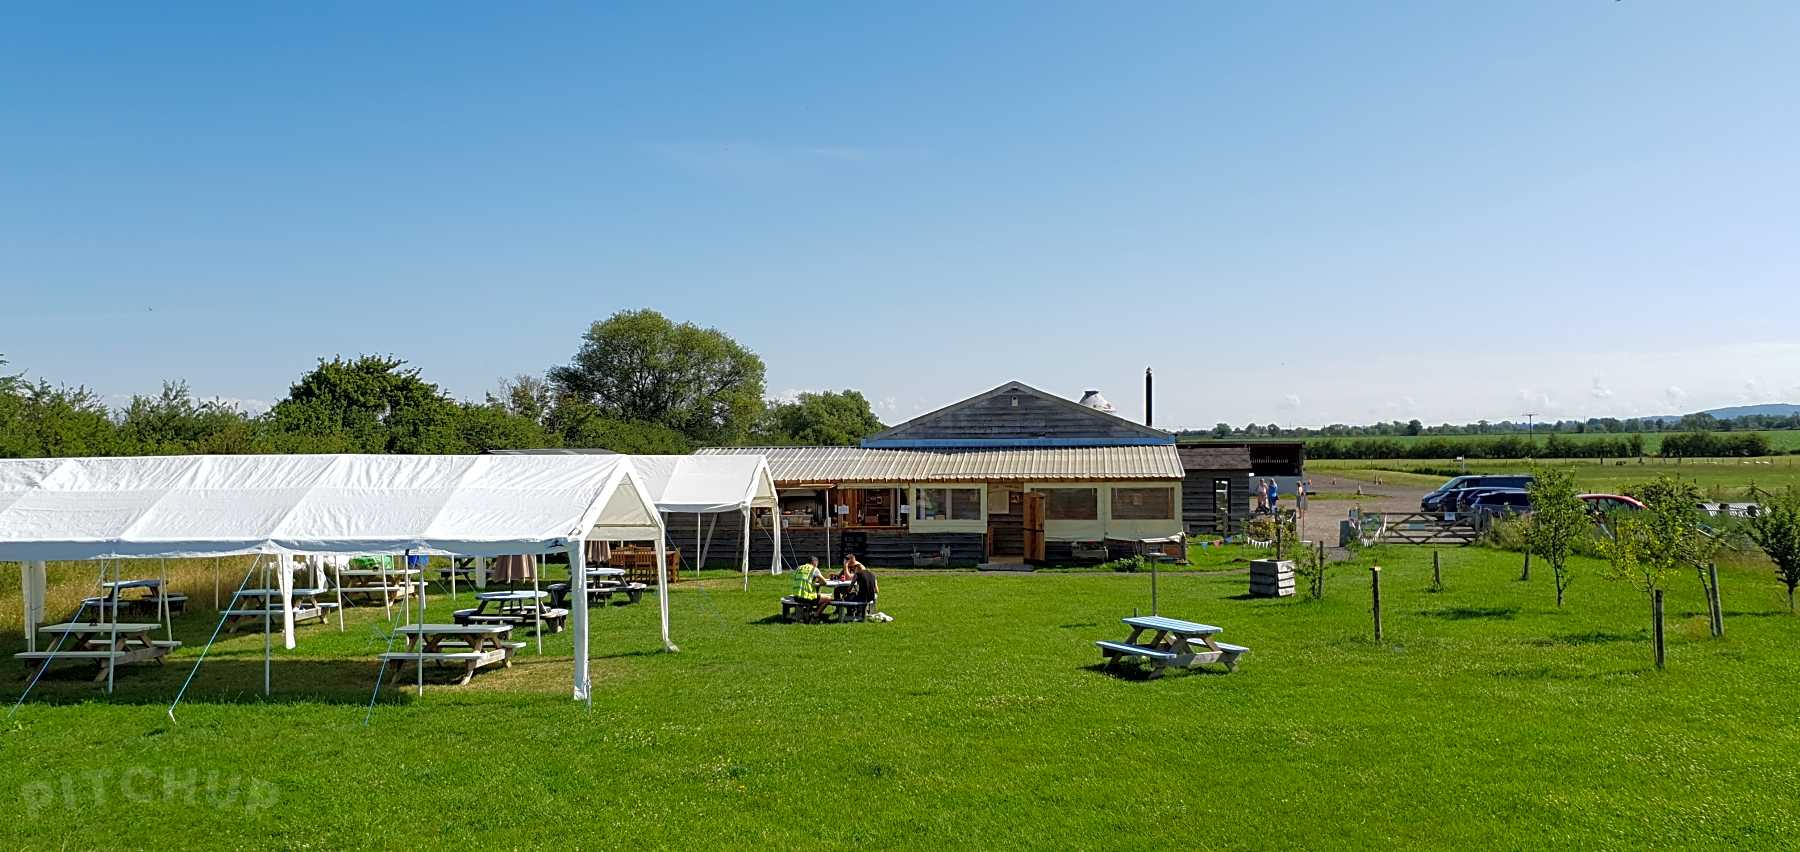 Find Cheap Tent Camping Sites in Aylesbury, Buckinghamshire